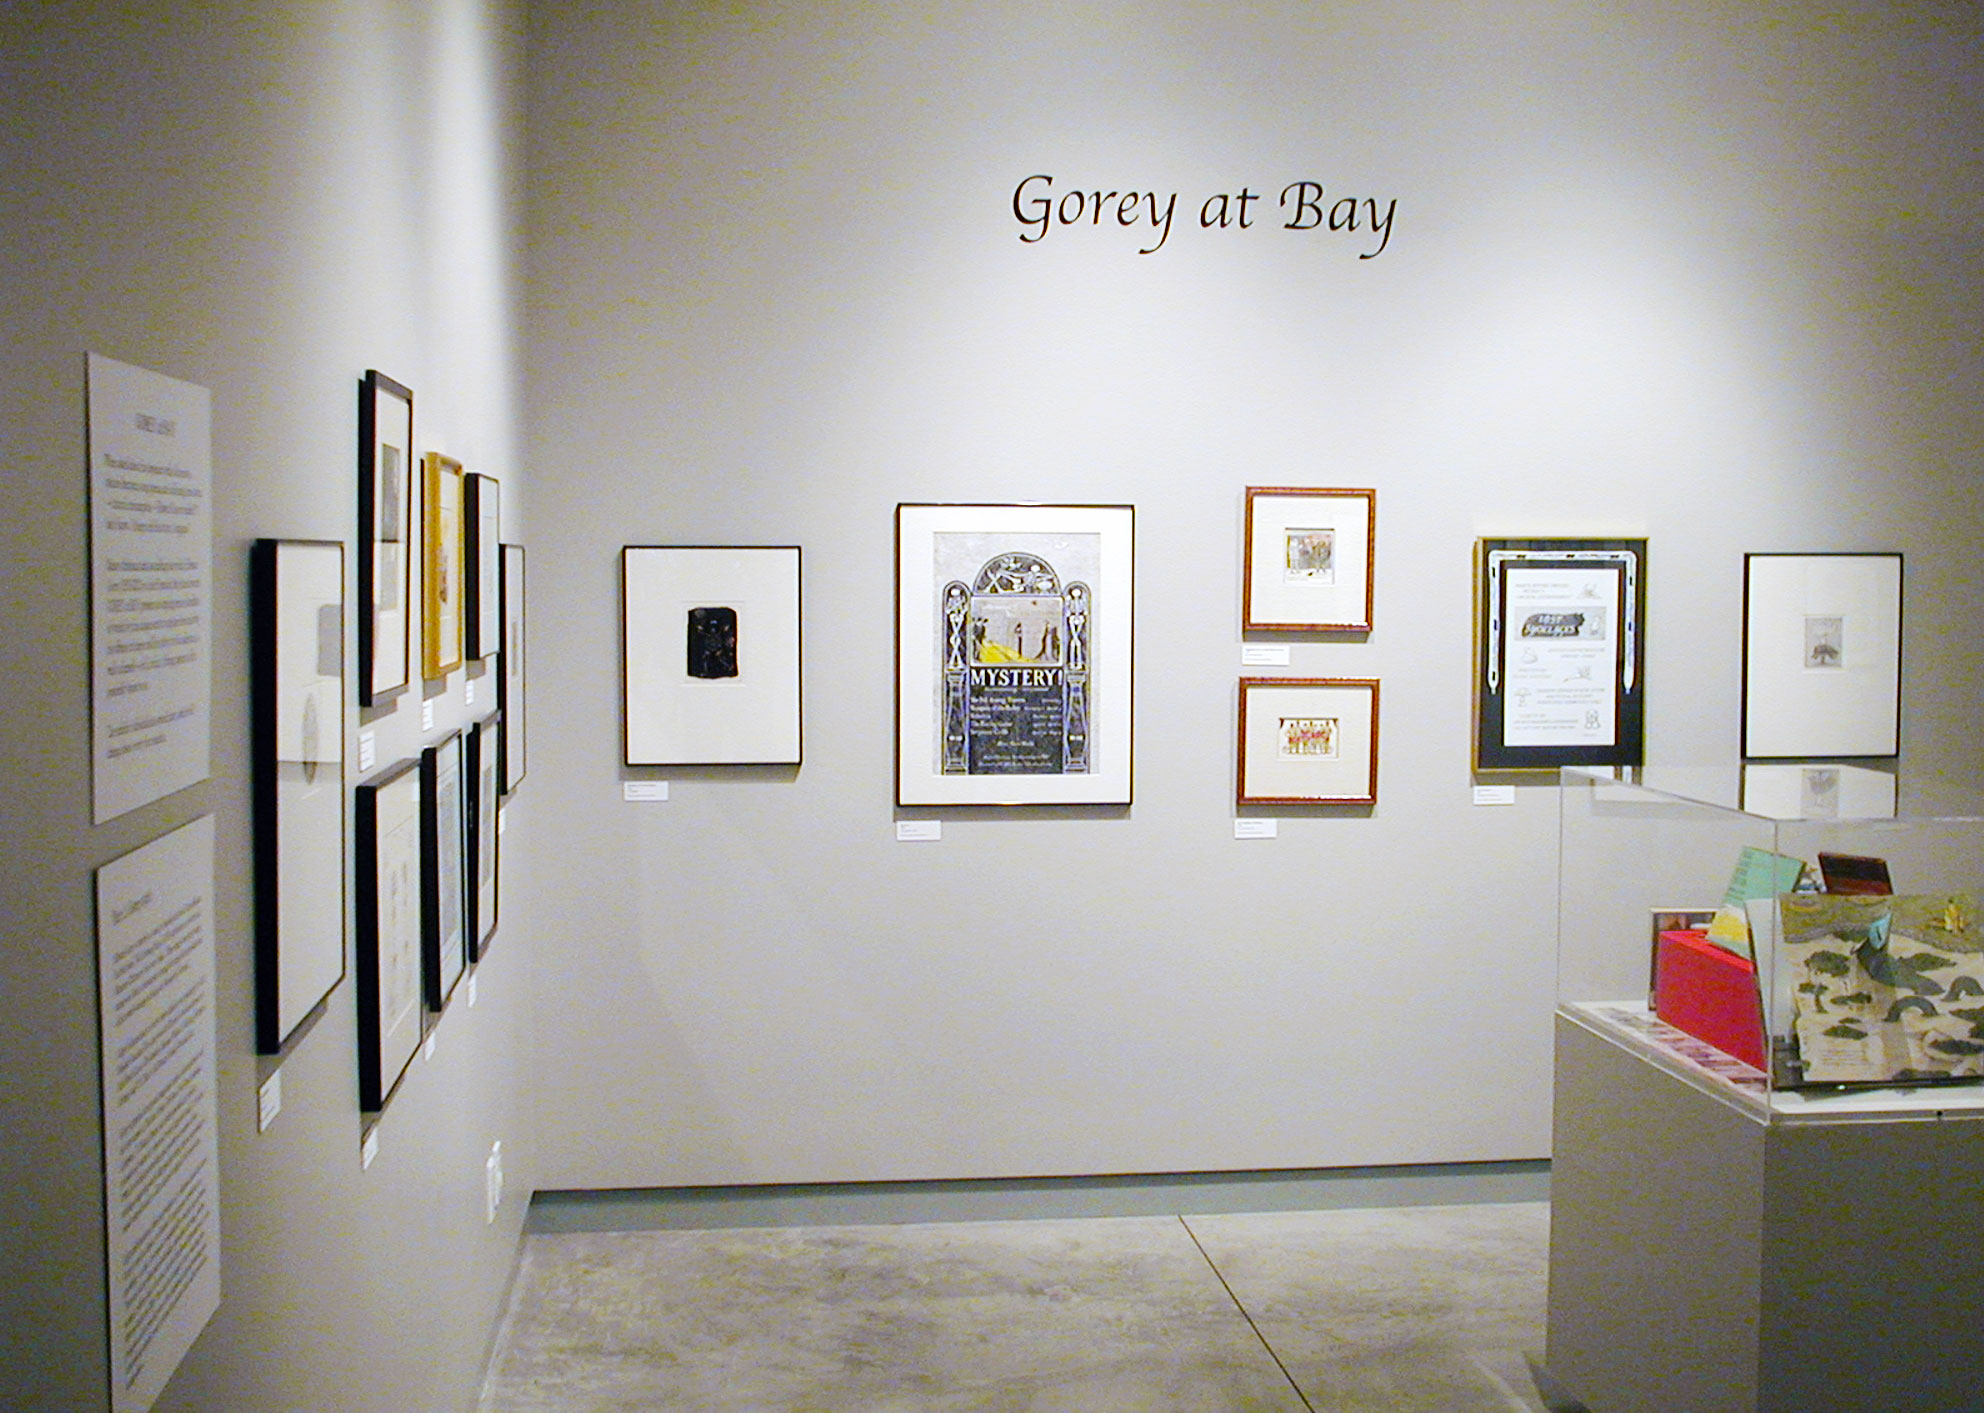 The works of Edward Gorey, on display at the 655 Mission Street gallery during the 2001  Gorey at Bay  exhibition.